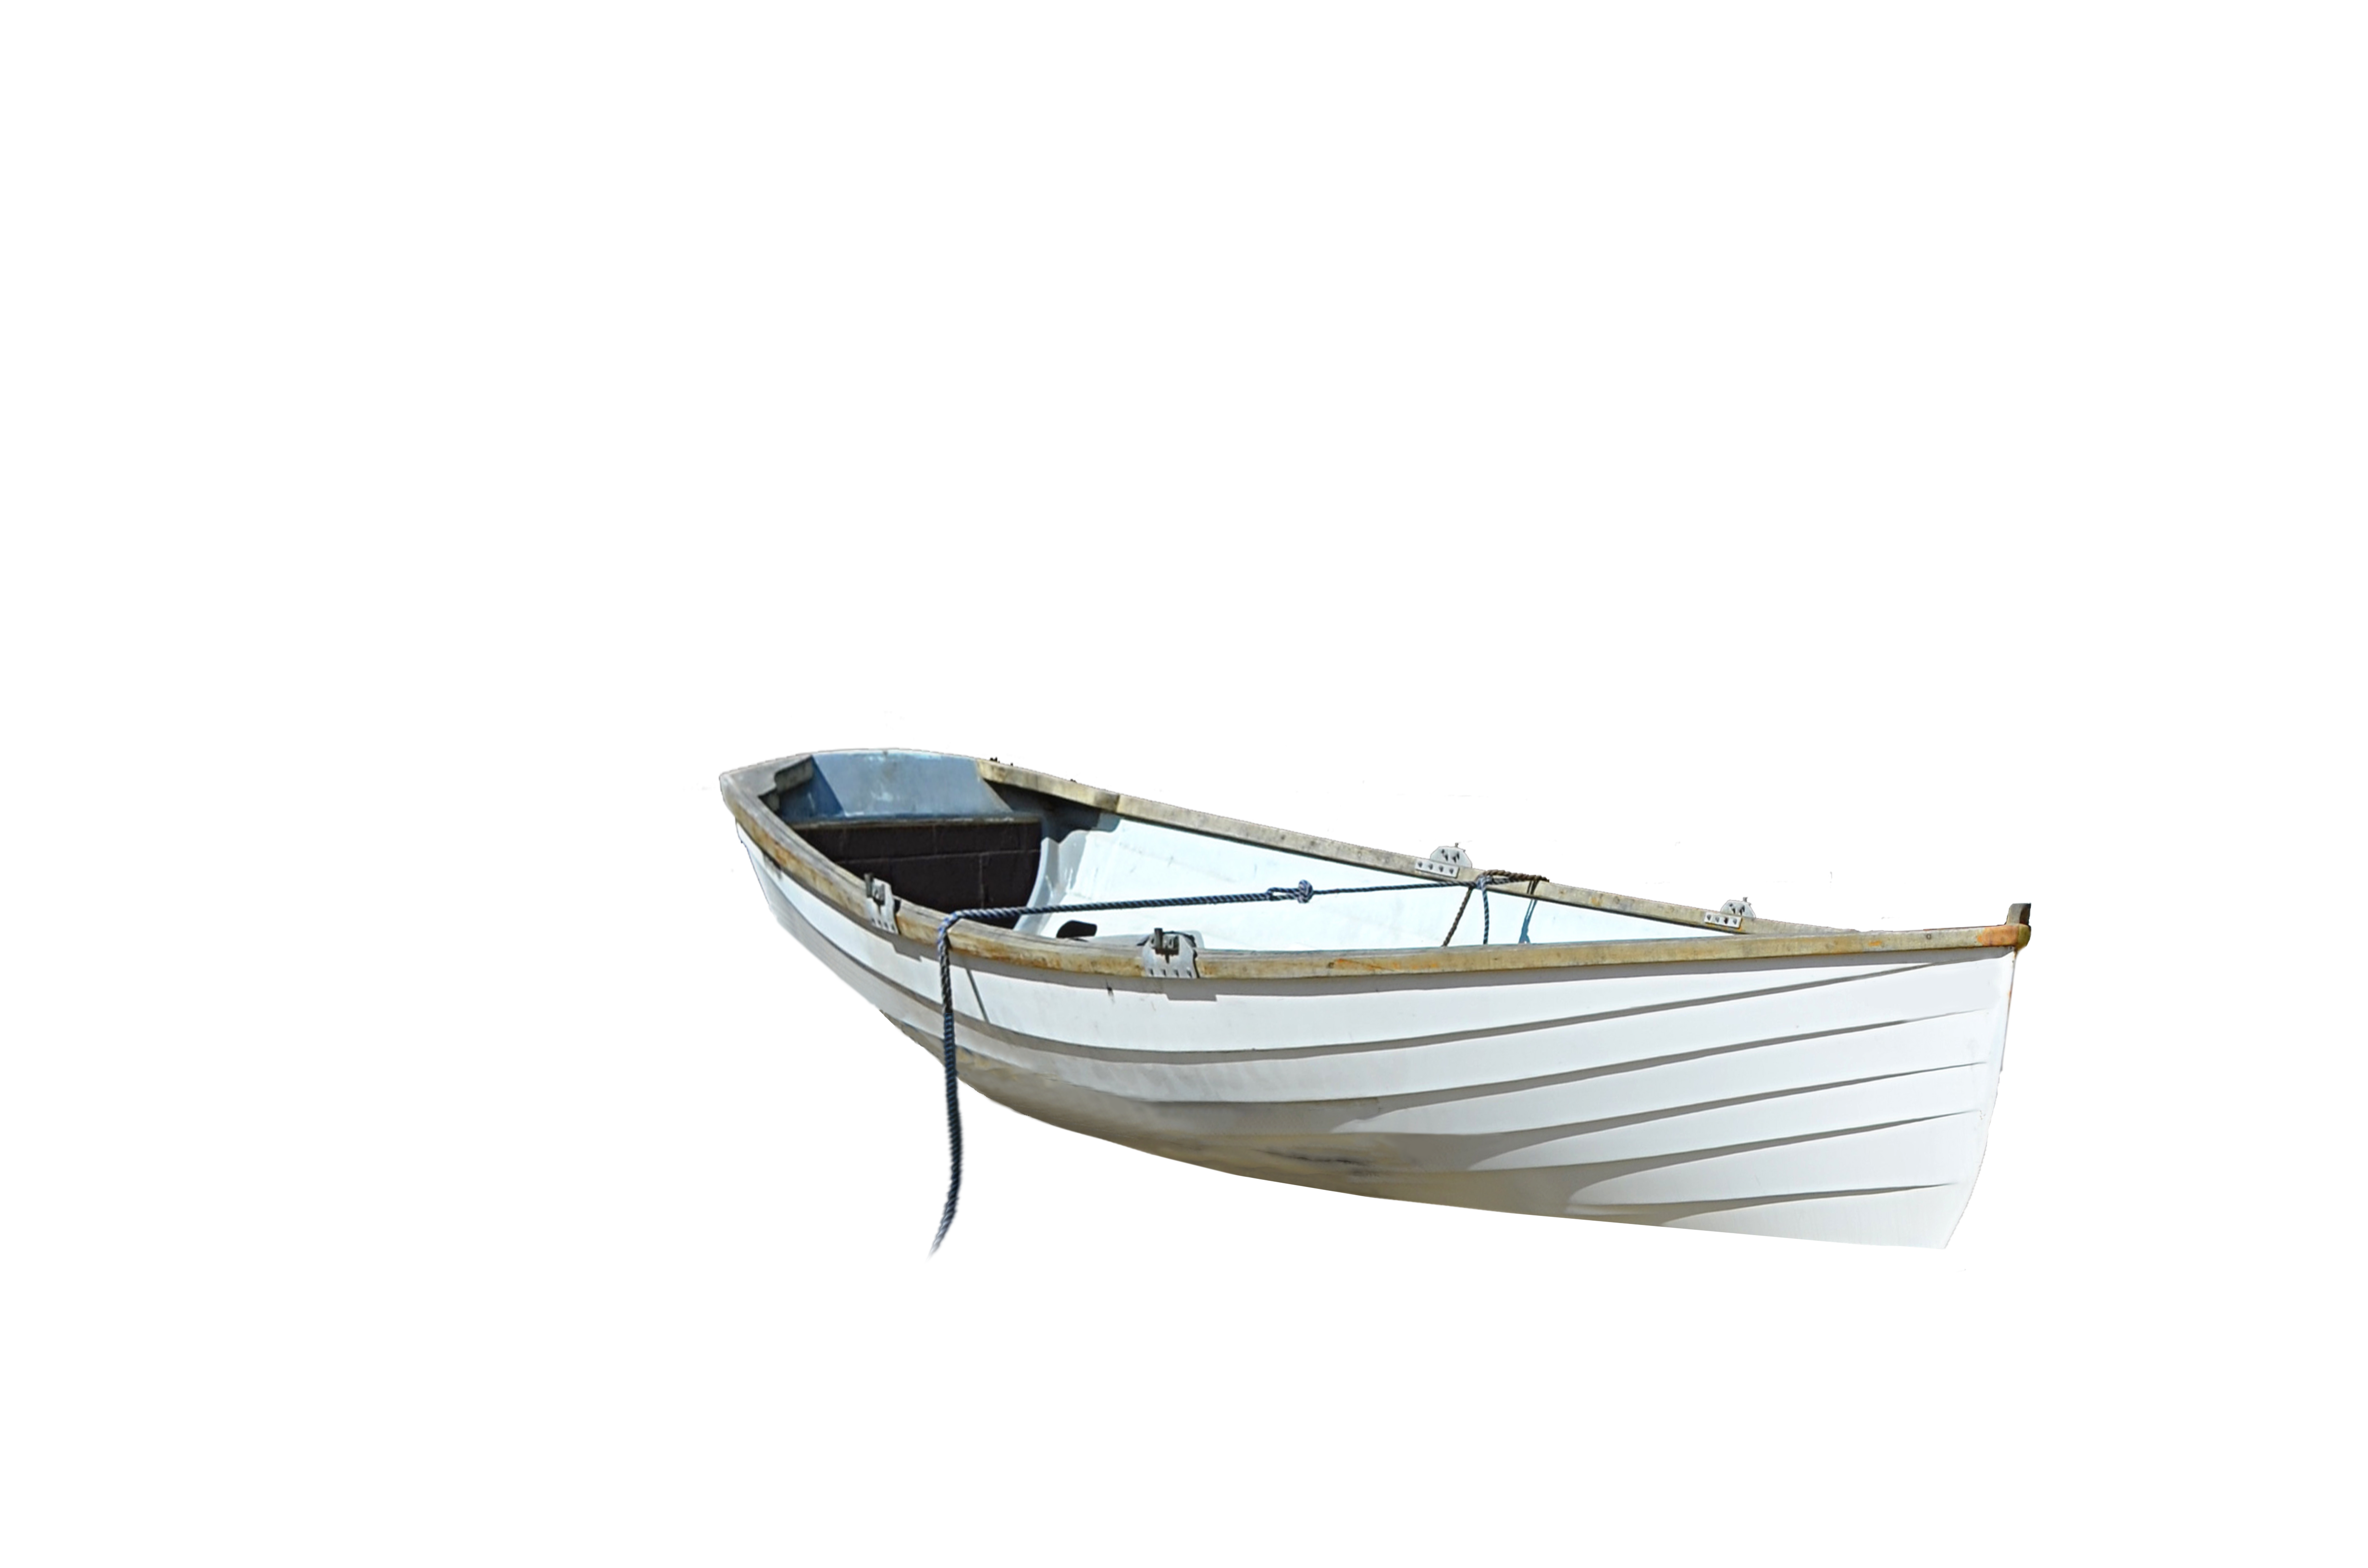 Transportation clipart canoe. Download boat free png